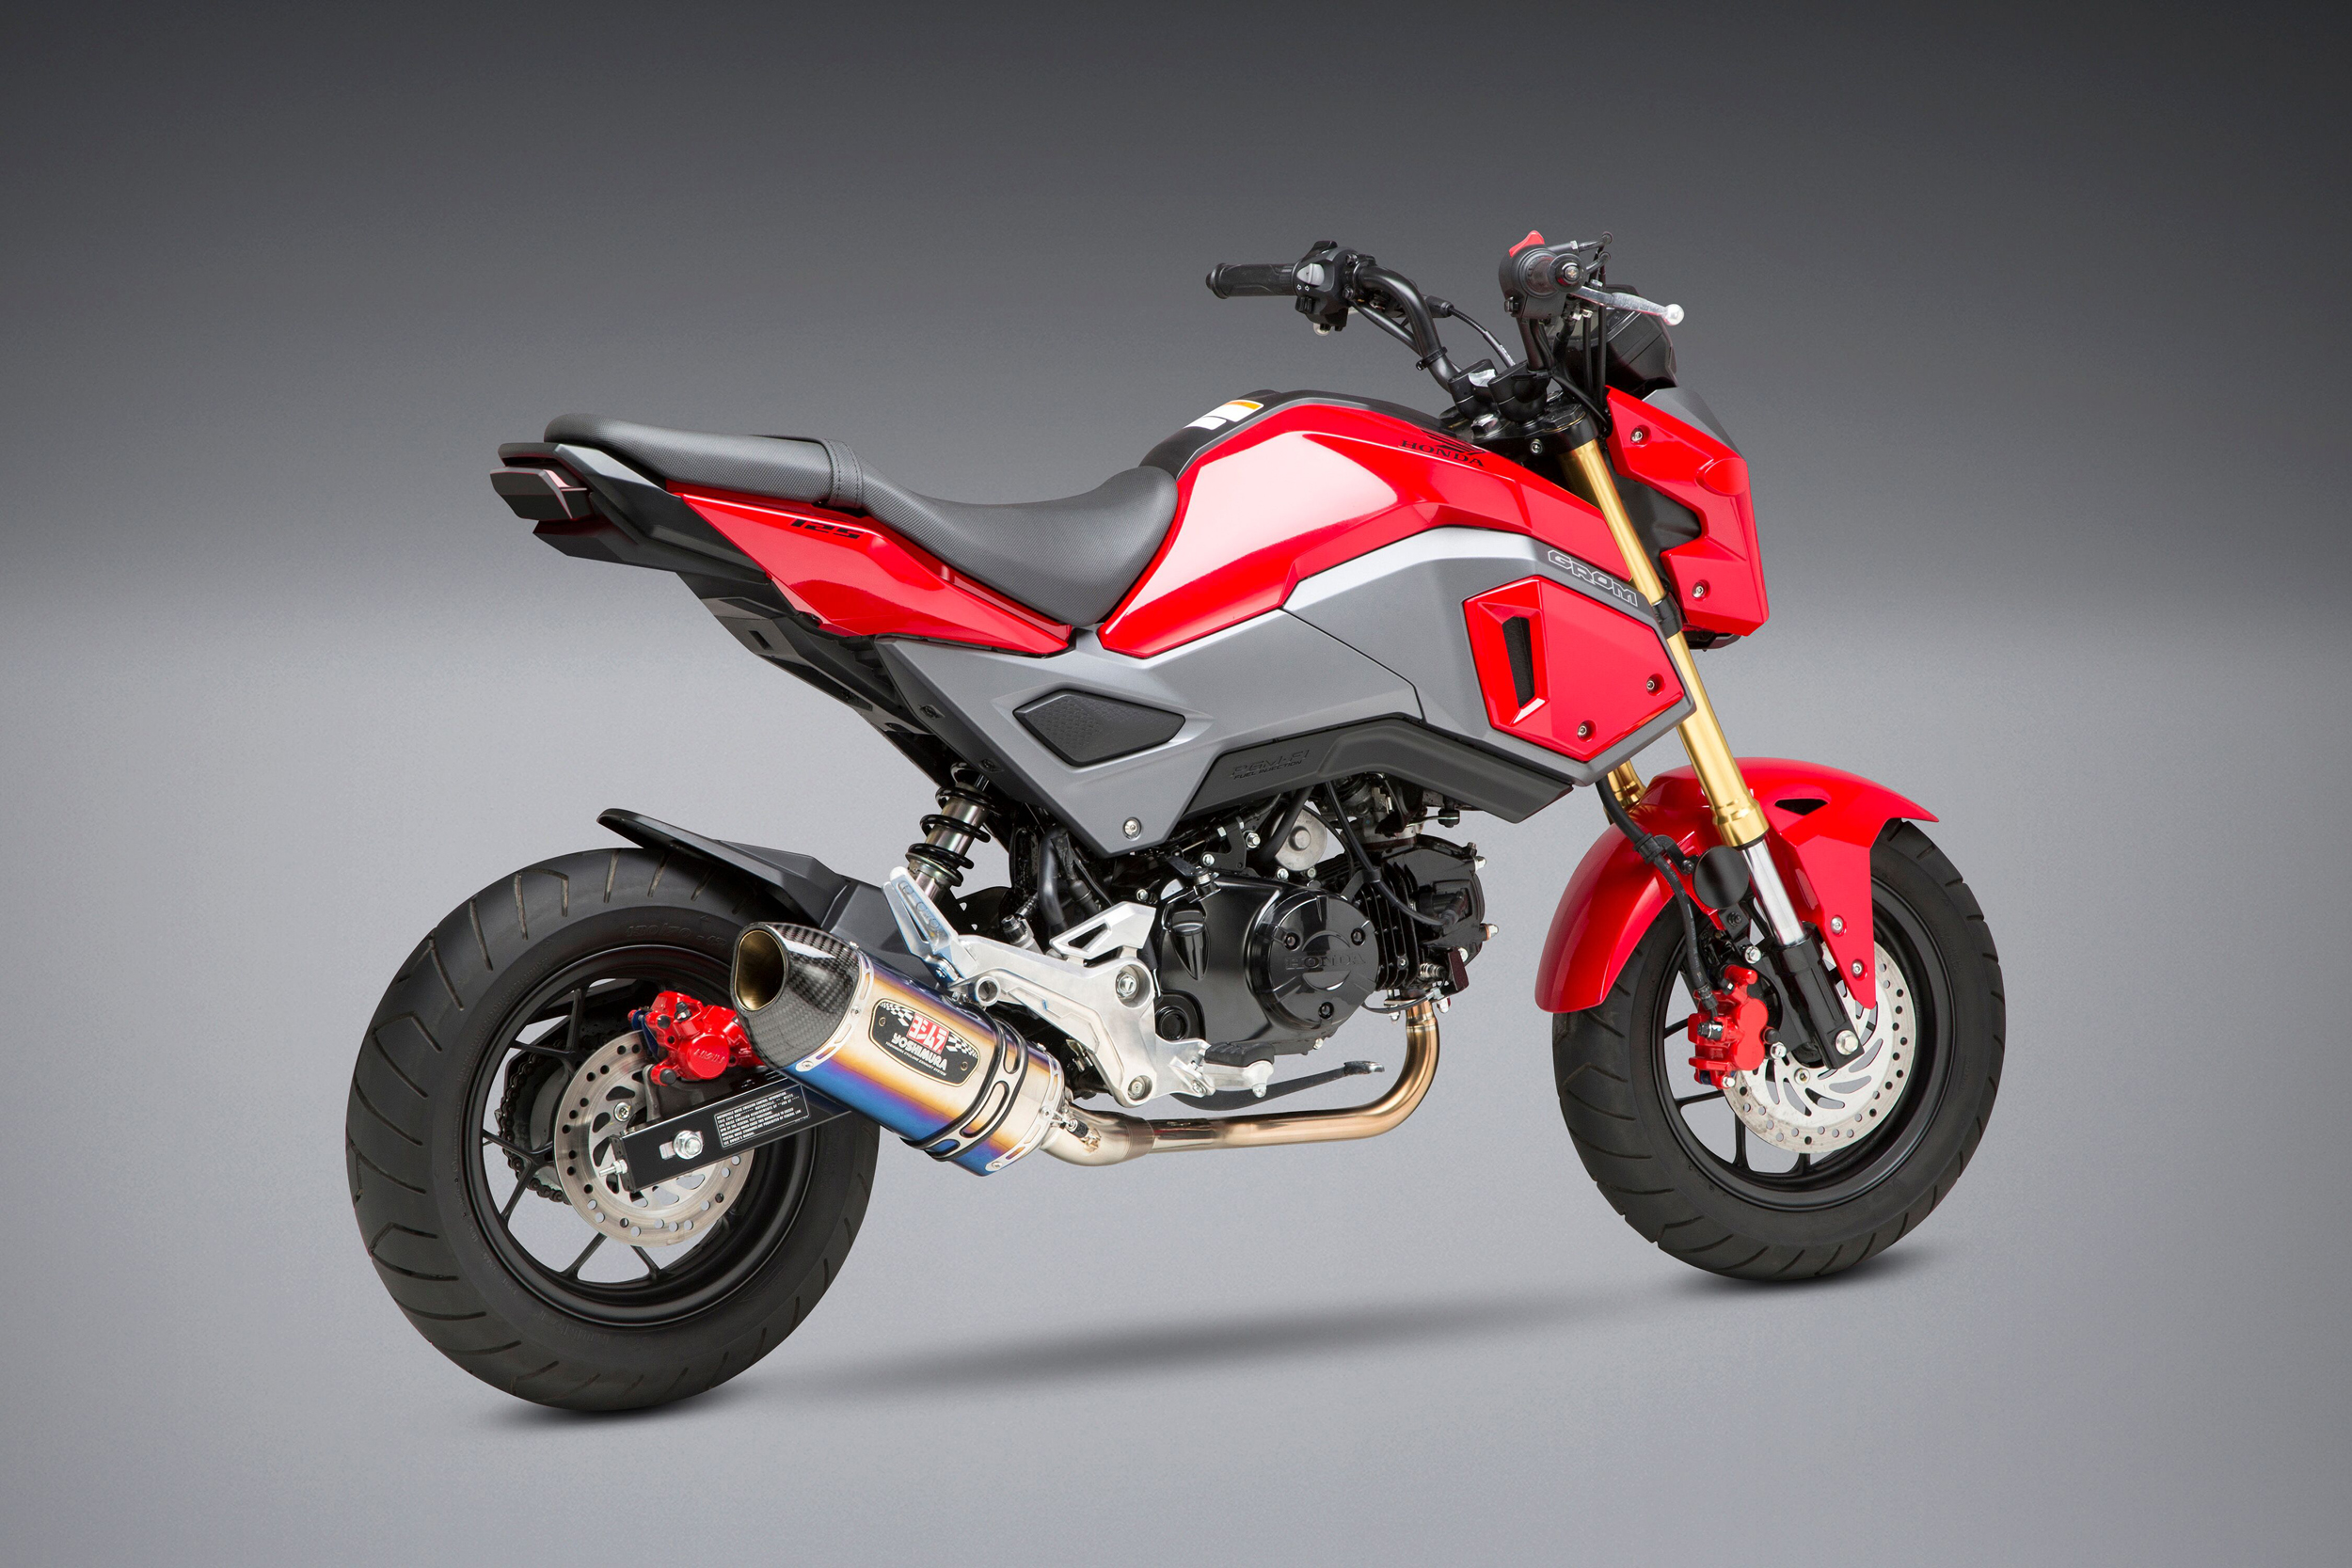 2019 Honda Grom with the Yoshimura R-77 titanium Race Series system